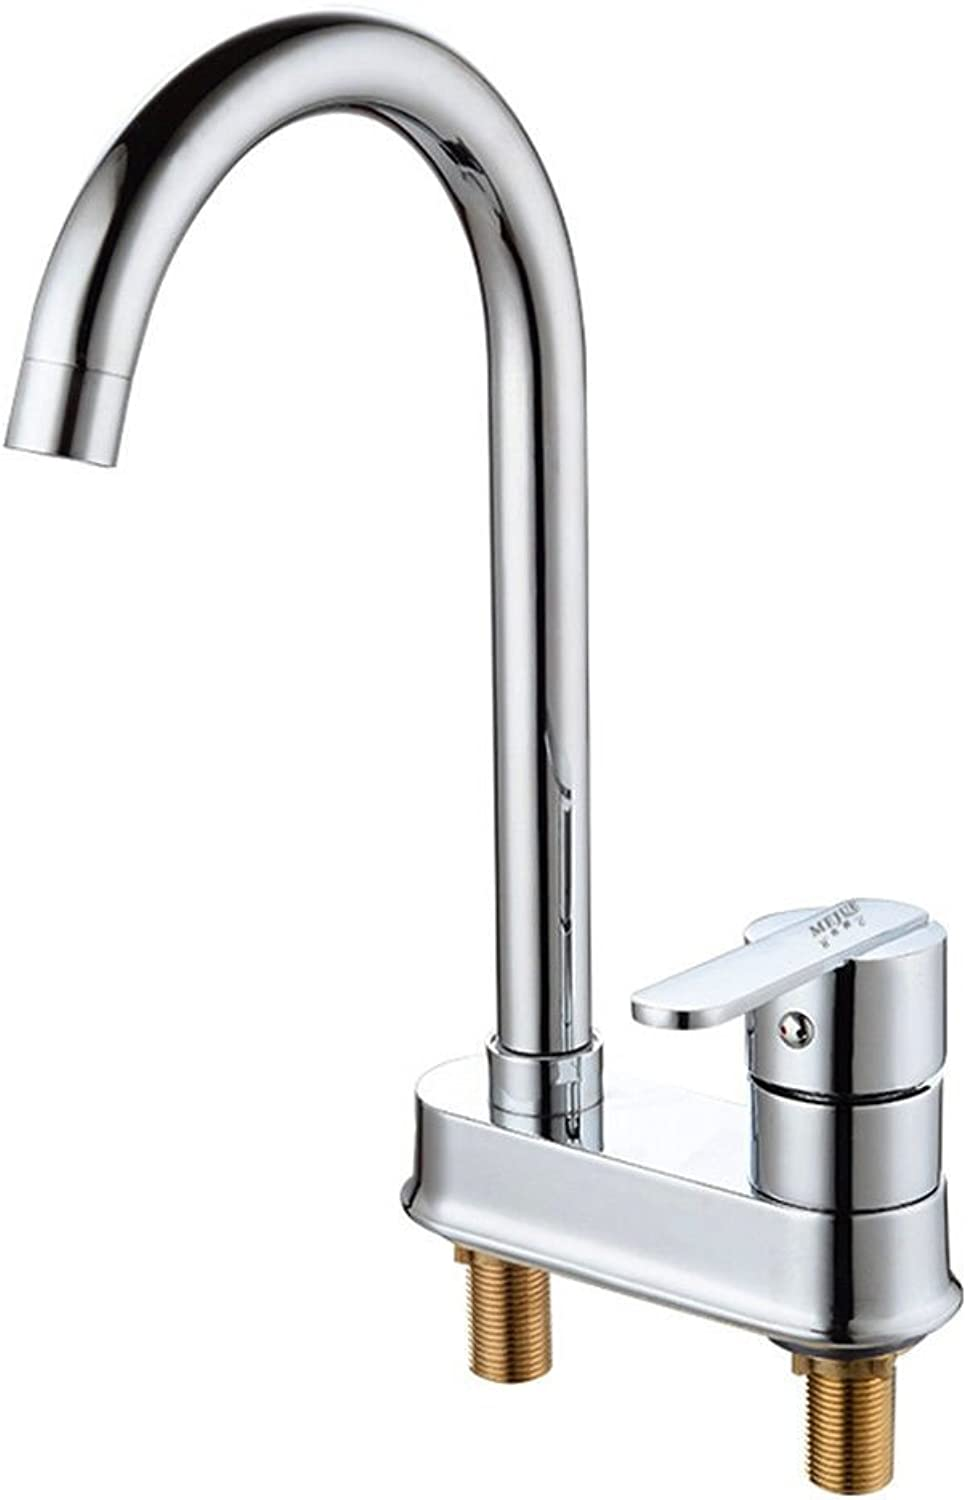 SADASD Modern Bathroom Basin Faucet Copper Double Hole 360° redating Washbasin Sink Taps Ceramic Valve Hot and Cold Mixer Tap With G1 2 Hose